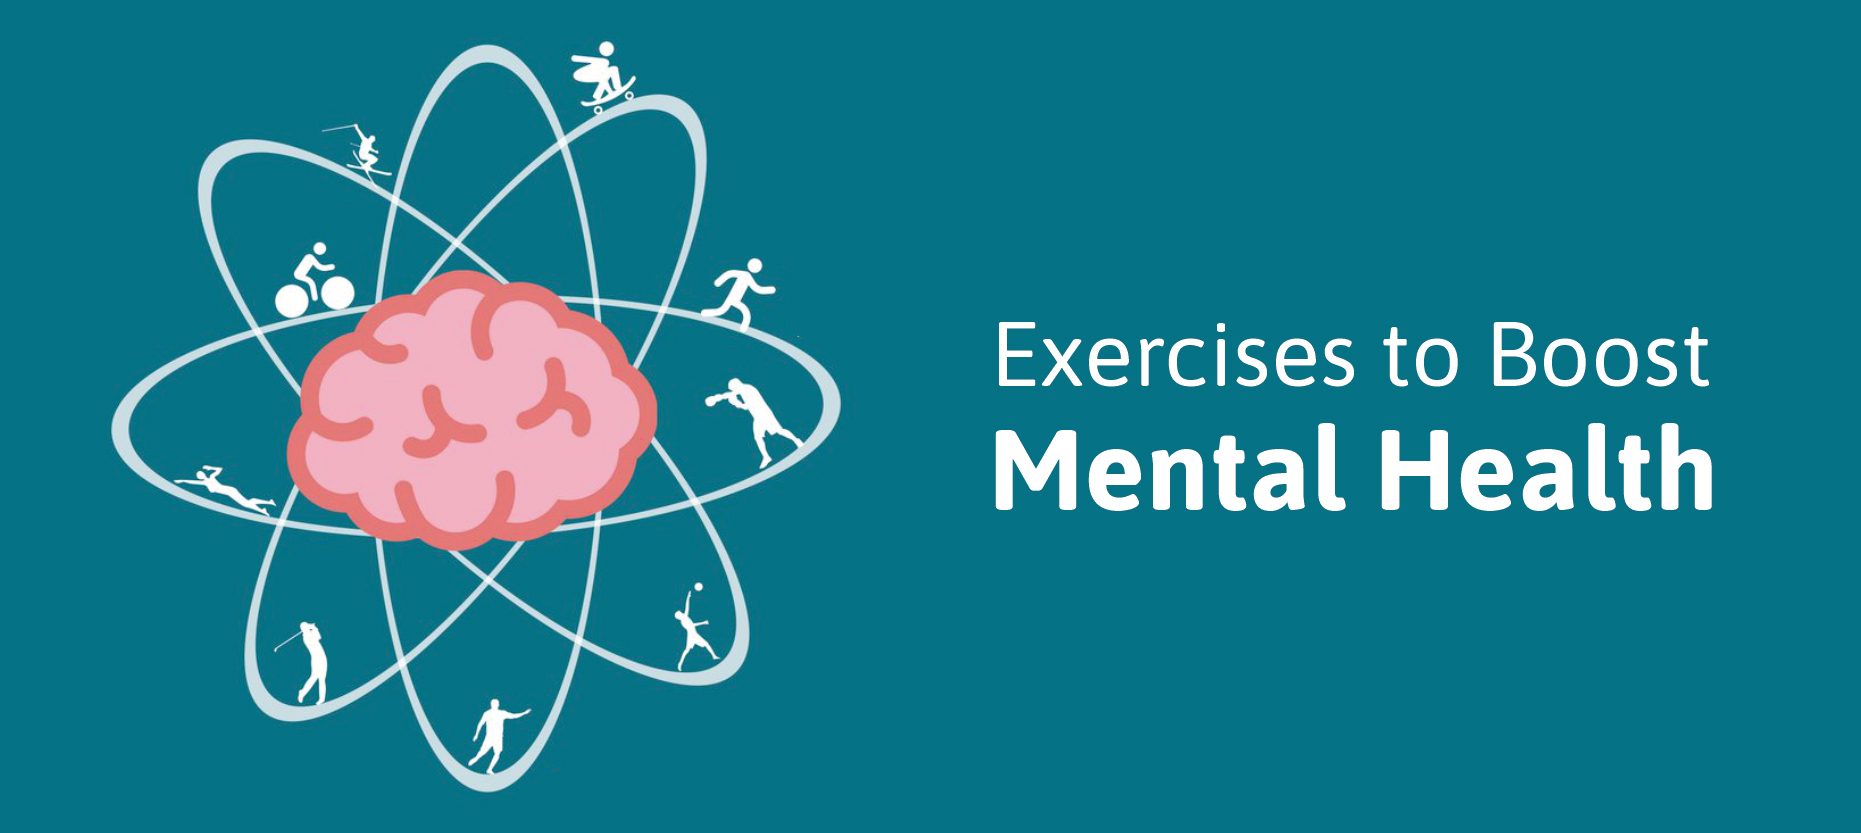 Best Exercises to Improve Mental Health